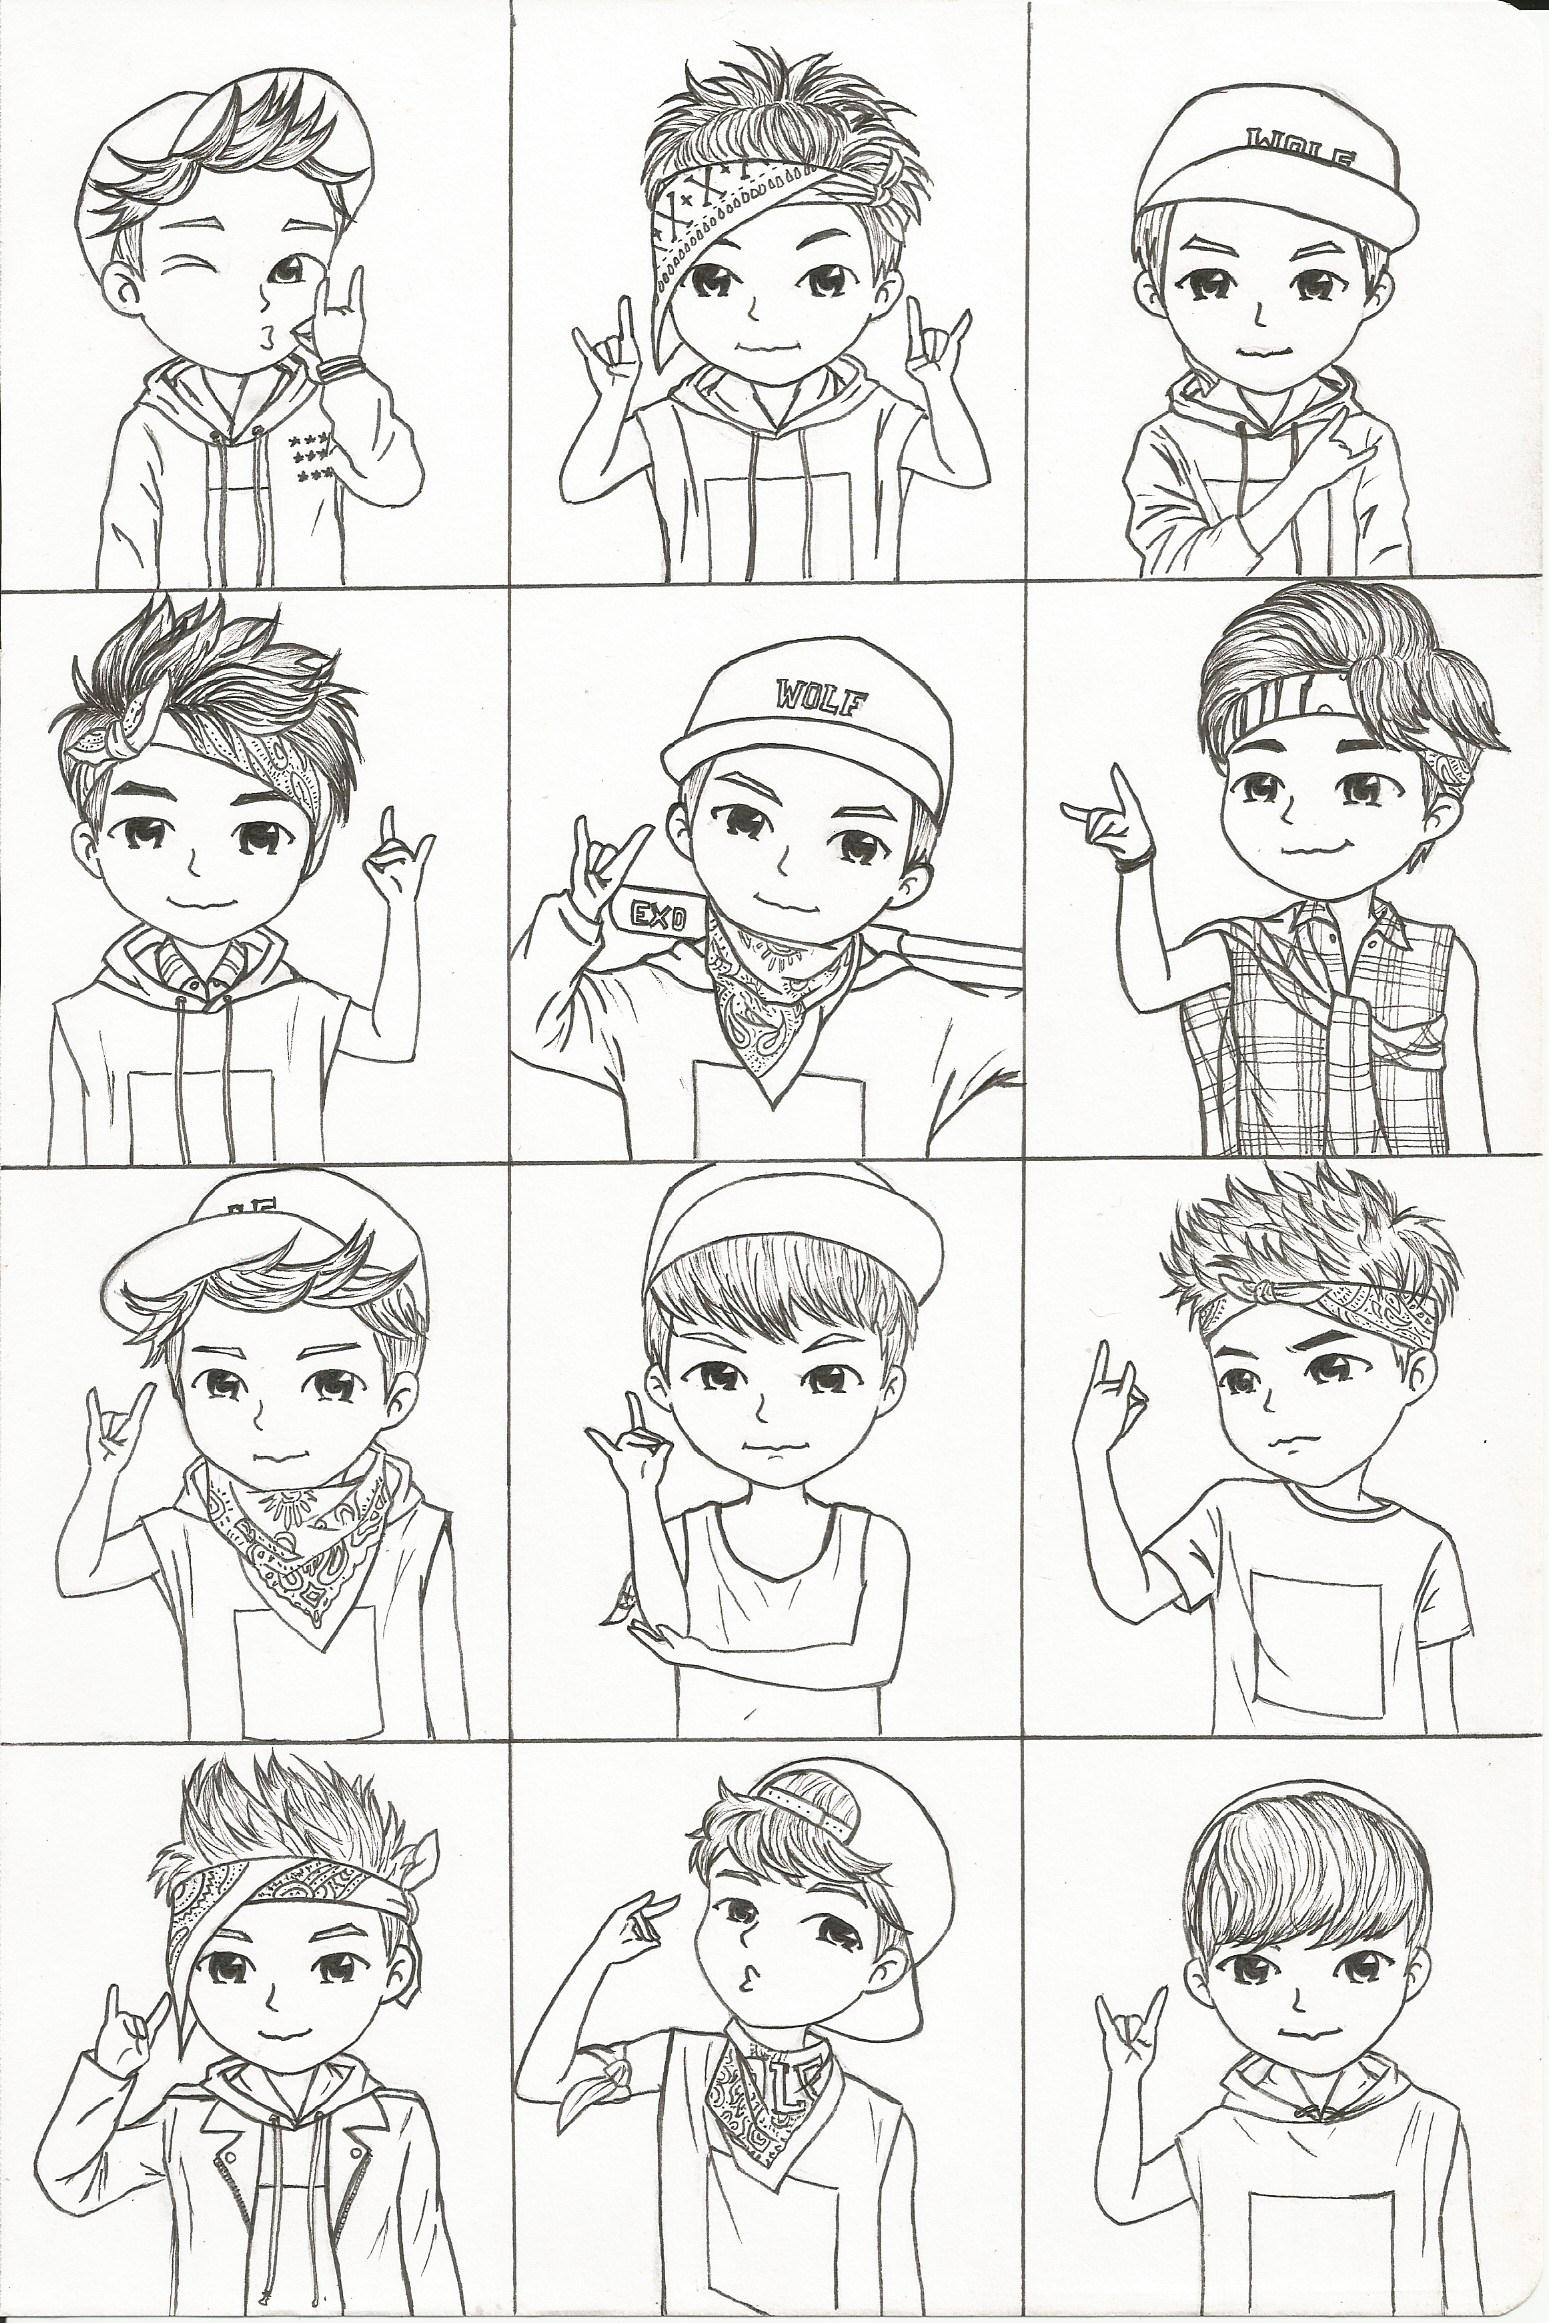 Exo Chibi Wolf Era By Growlingwolf88 On DeviantArt